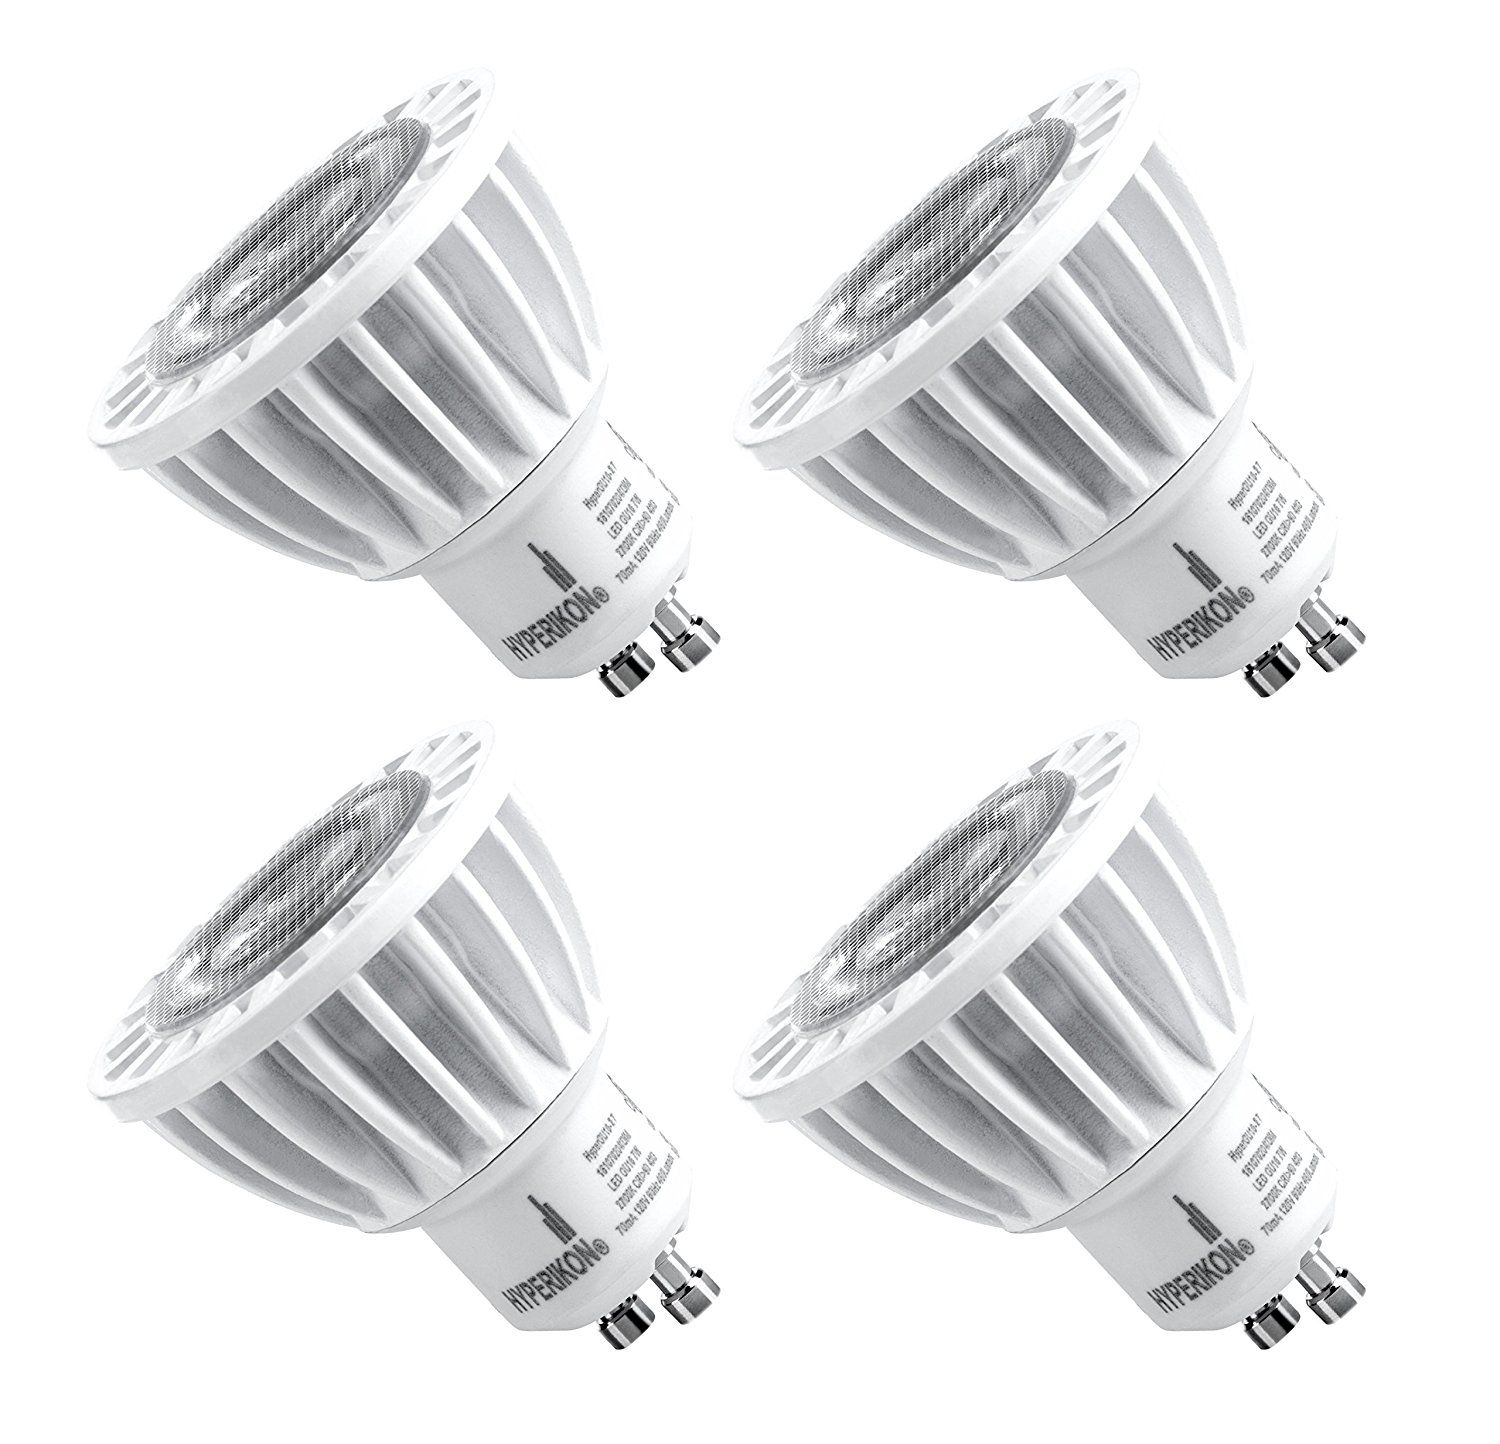 Hyperikon Mr16 Gu10 Led 7w 50w Equivalent 400 Lumen 2700k Warm White Cri 90 120 Volt 40 Beam Angle Dimmable Ul Listed Led Track Lighting Bulb Led